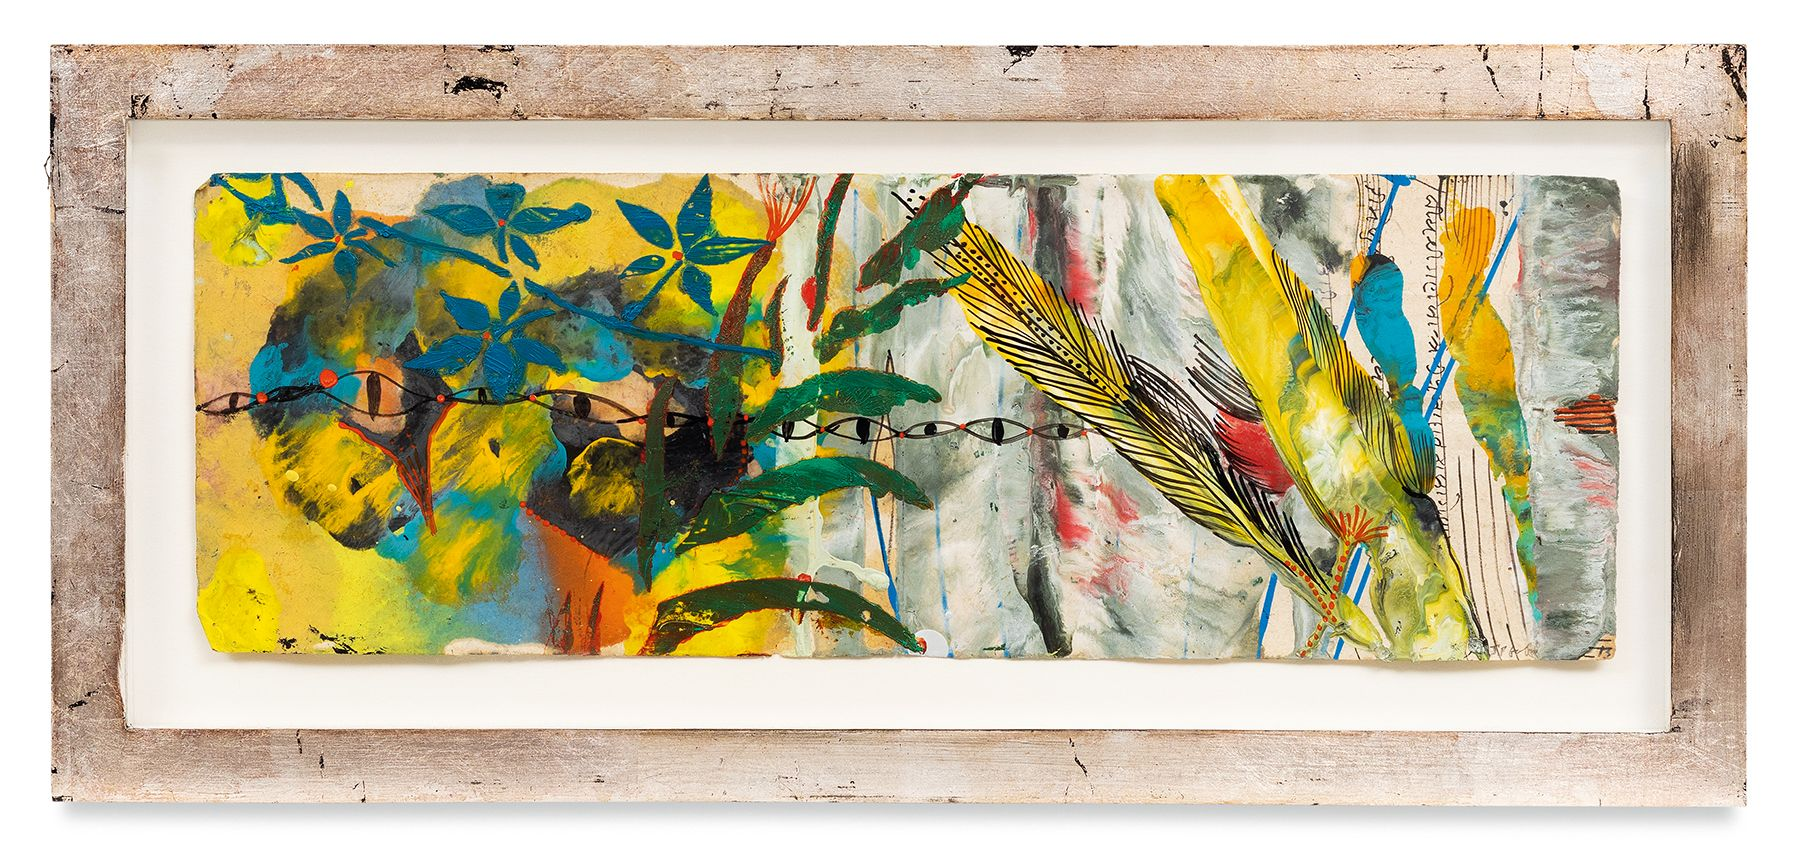 Raga 10, 2013, Oil stick, encaustic, vintage Indian paper, in artist's frame, 9 7/8 x 21 7/8 inches, 25.1 x 55.6 cm, MMG#30625